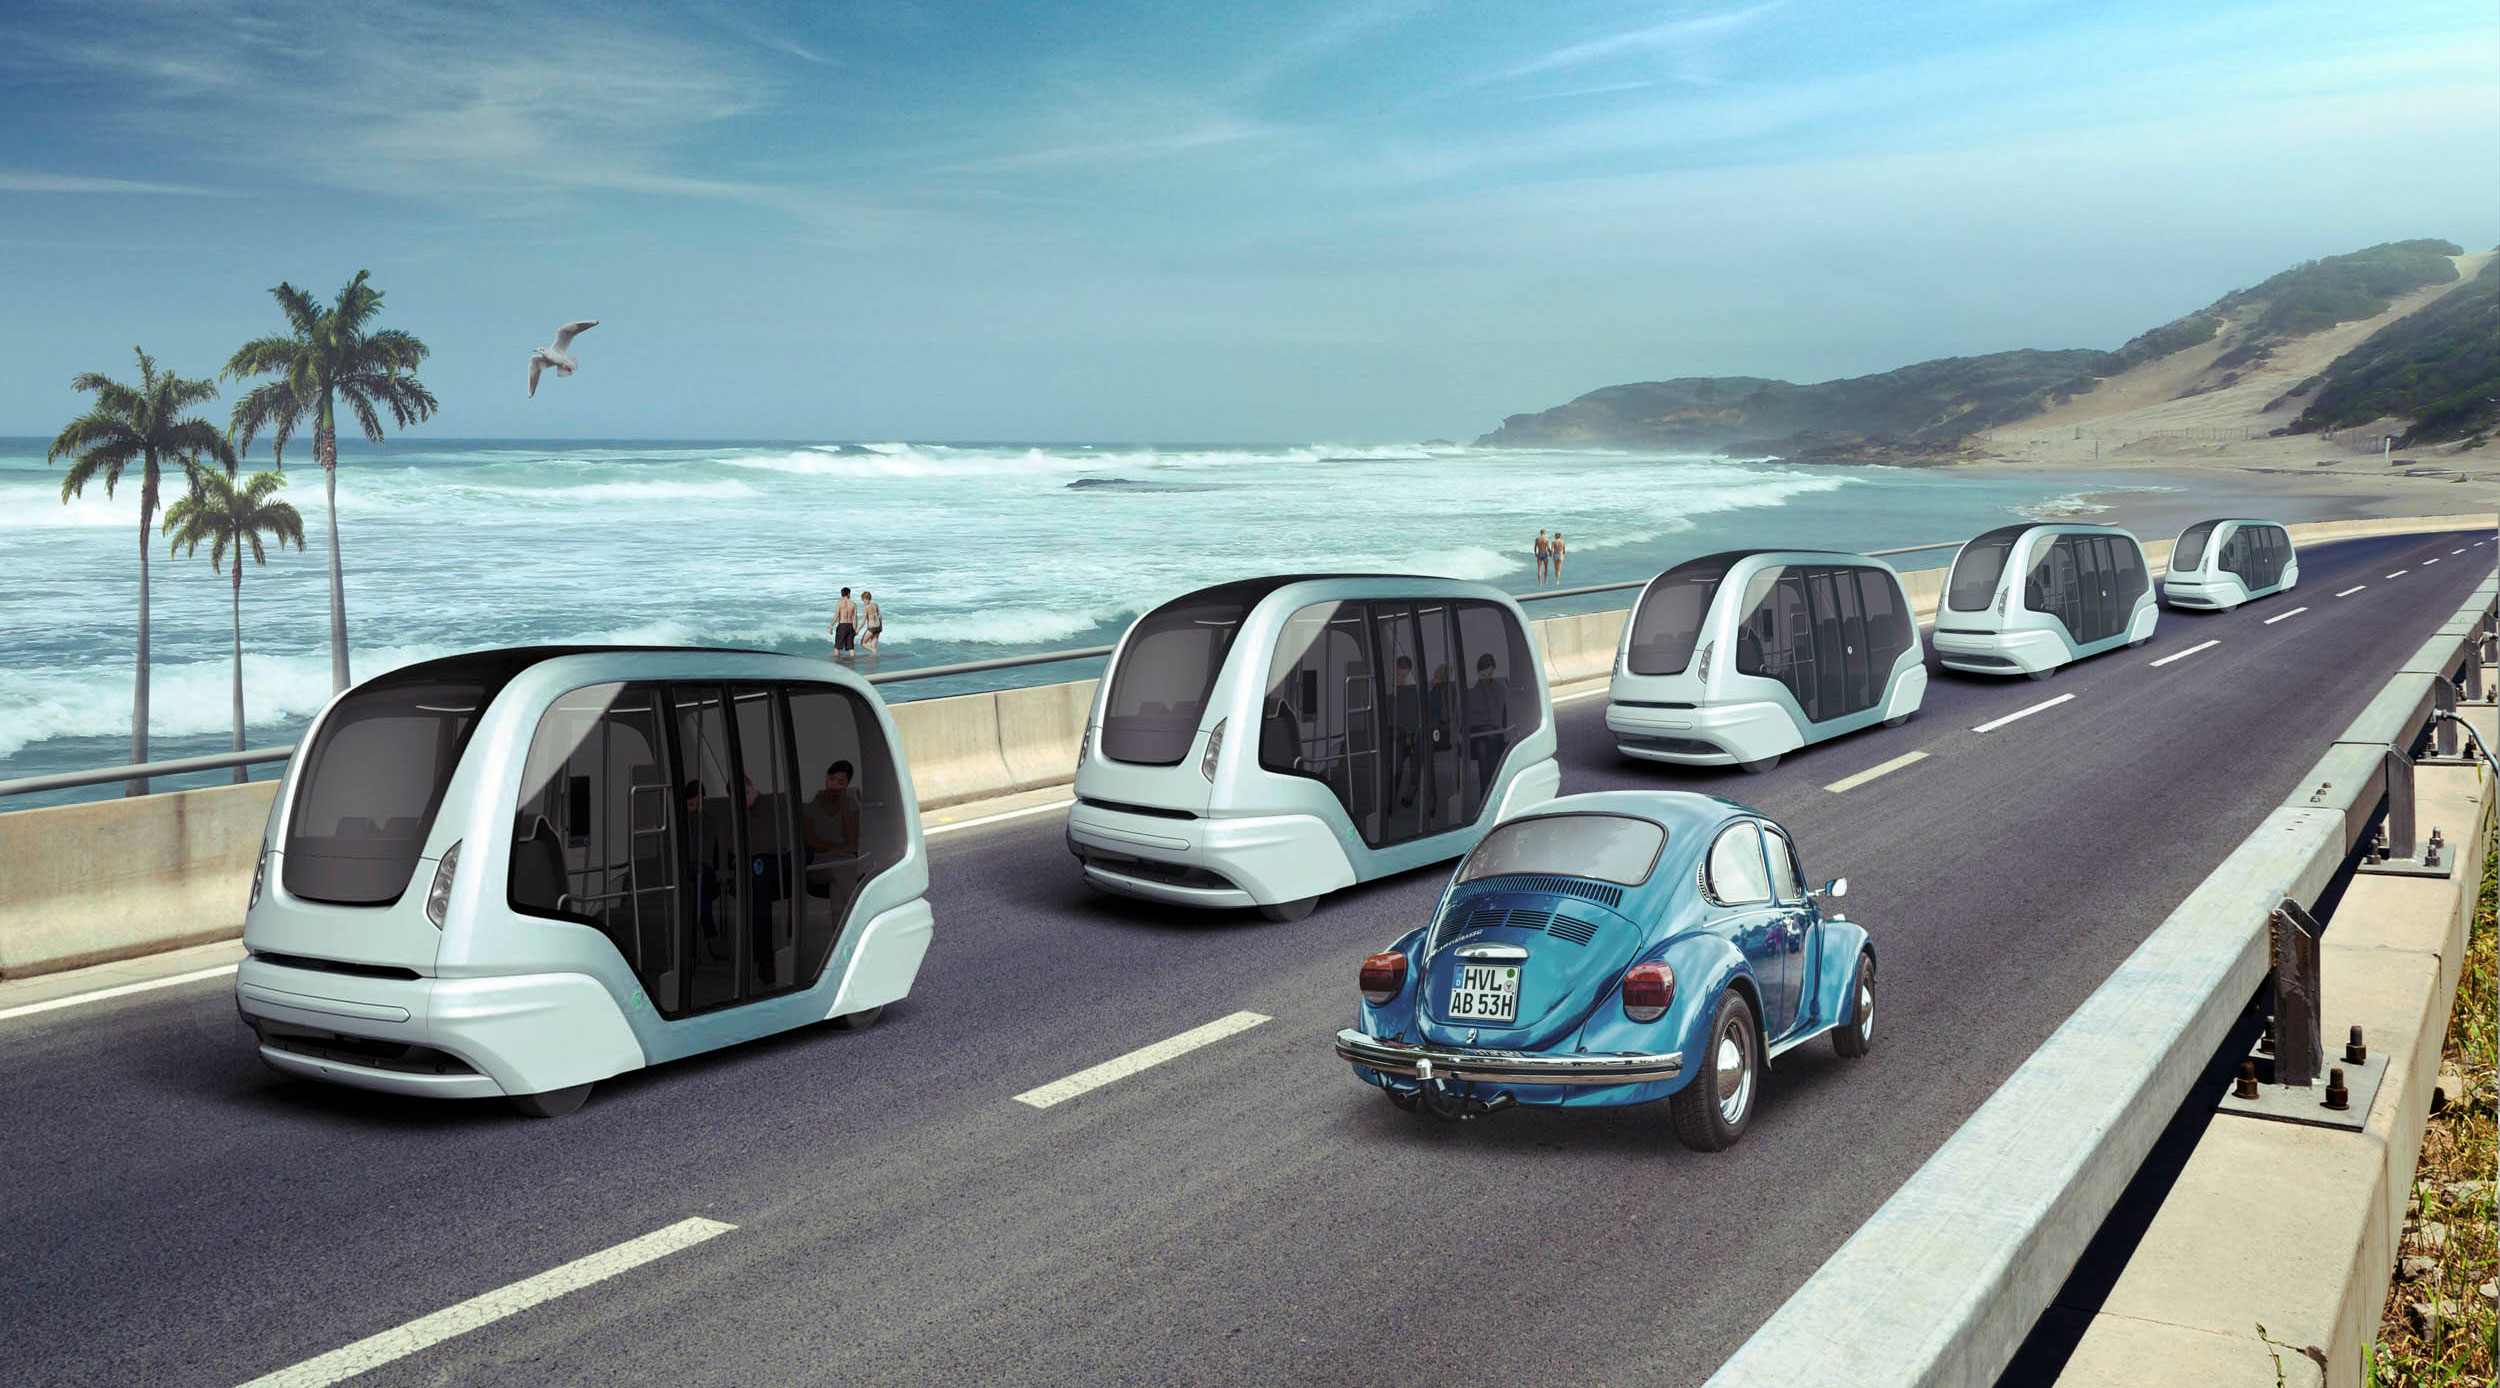 How yesterday's cars might mix with tomorrow's autonomous traffic